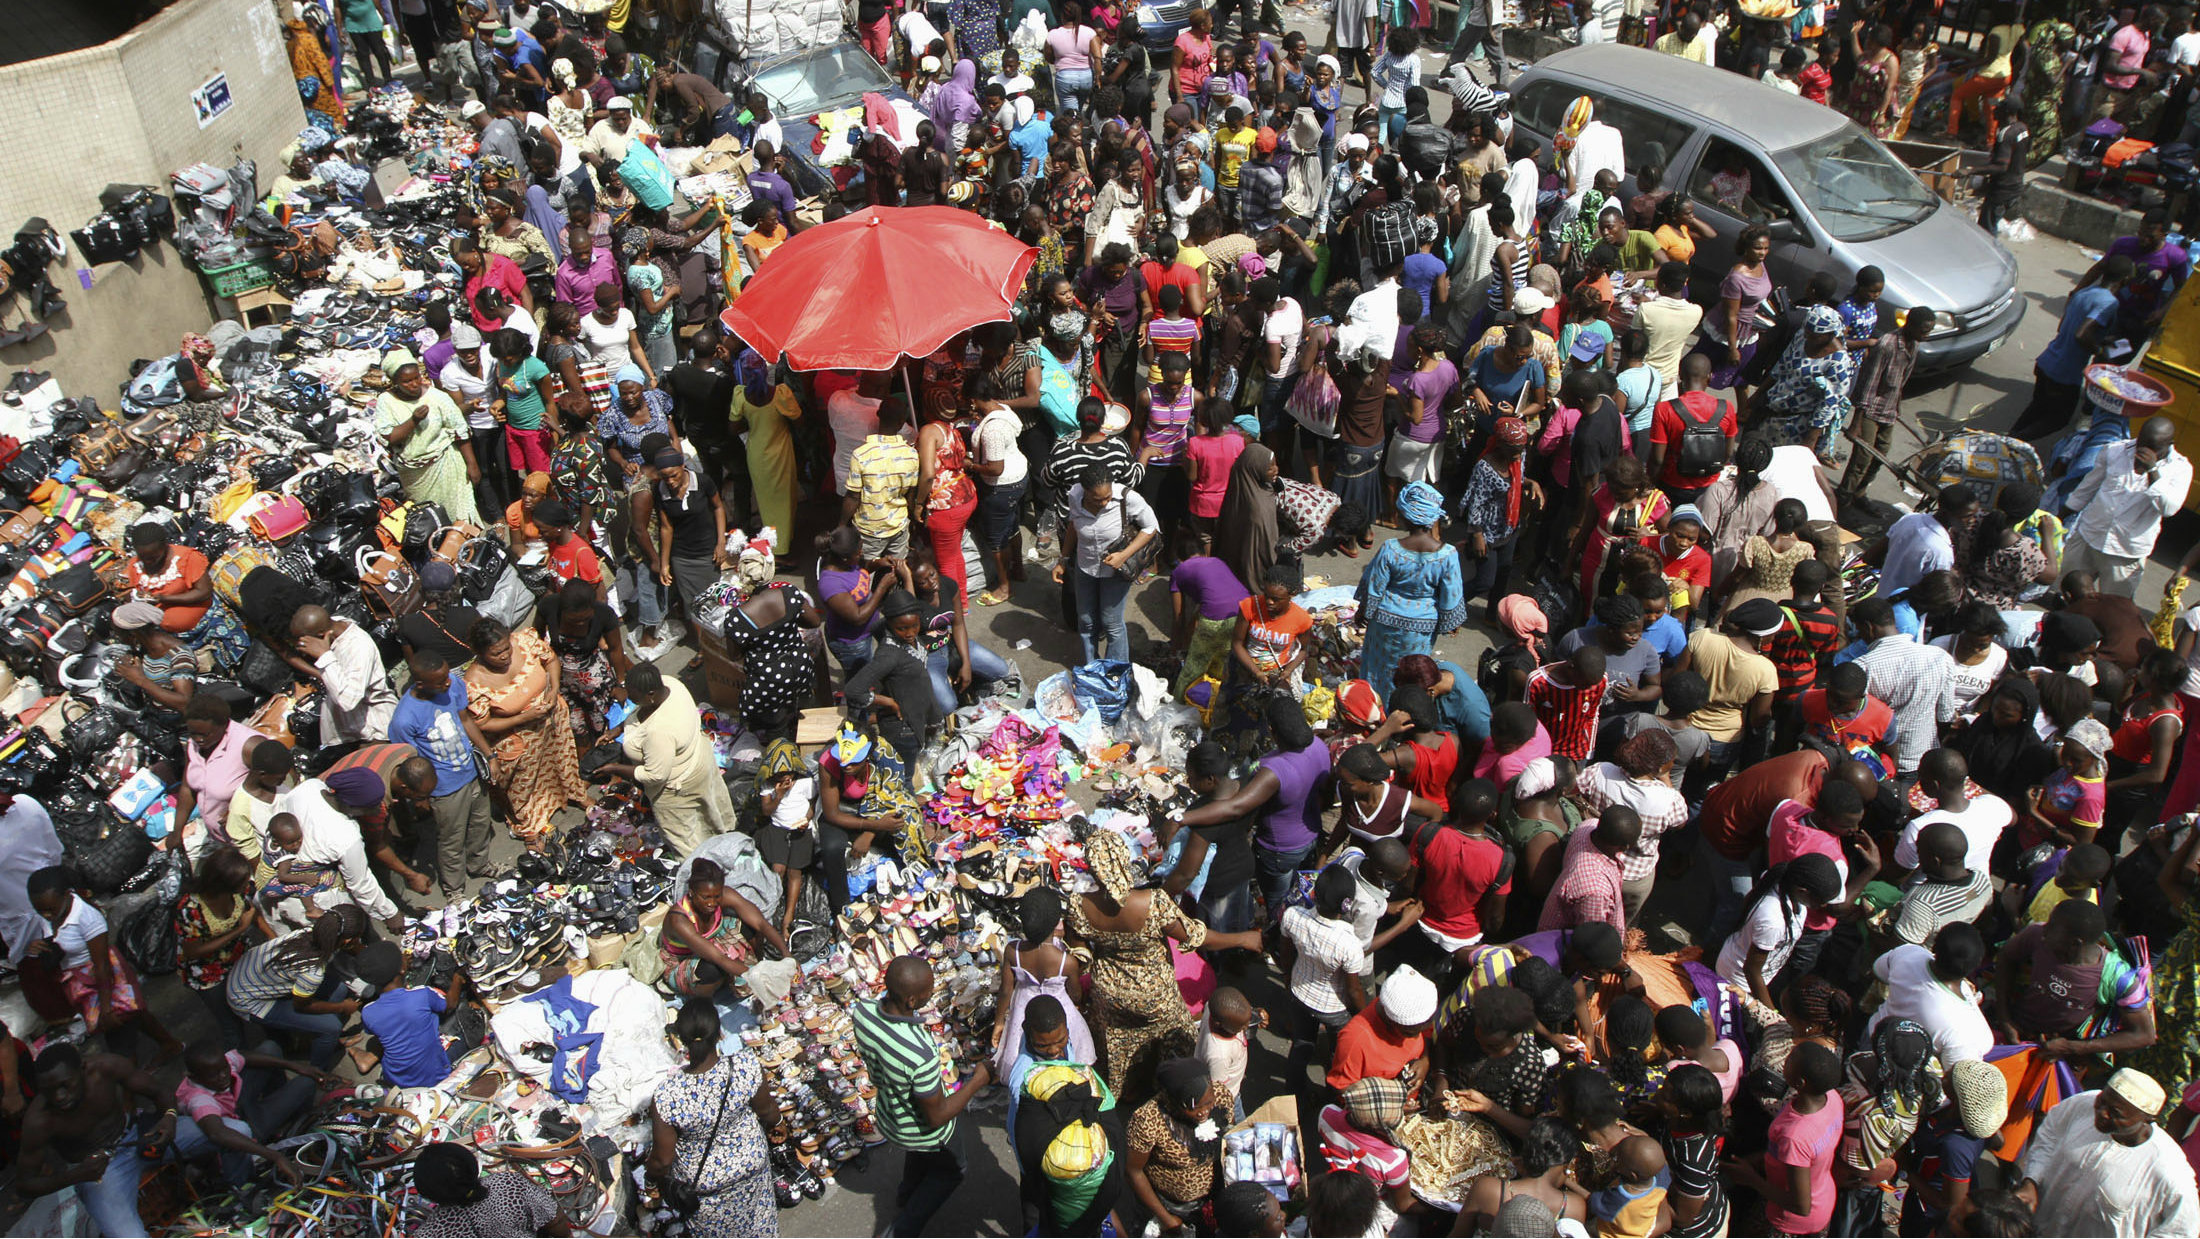 People crowd on a road near Balogun market to shop, a day before Christmas in Nigeria's commercial capital Lagos December 24, 2012.